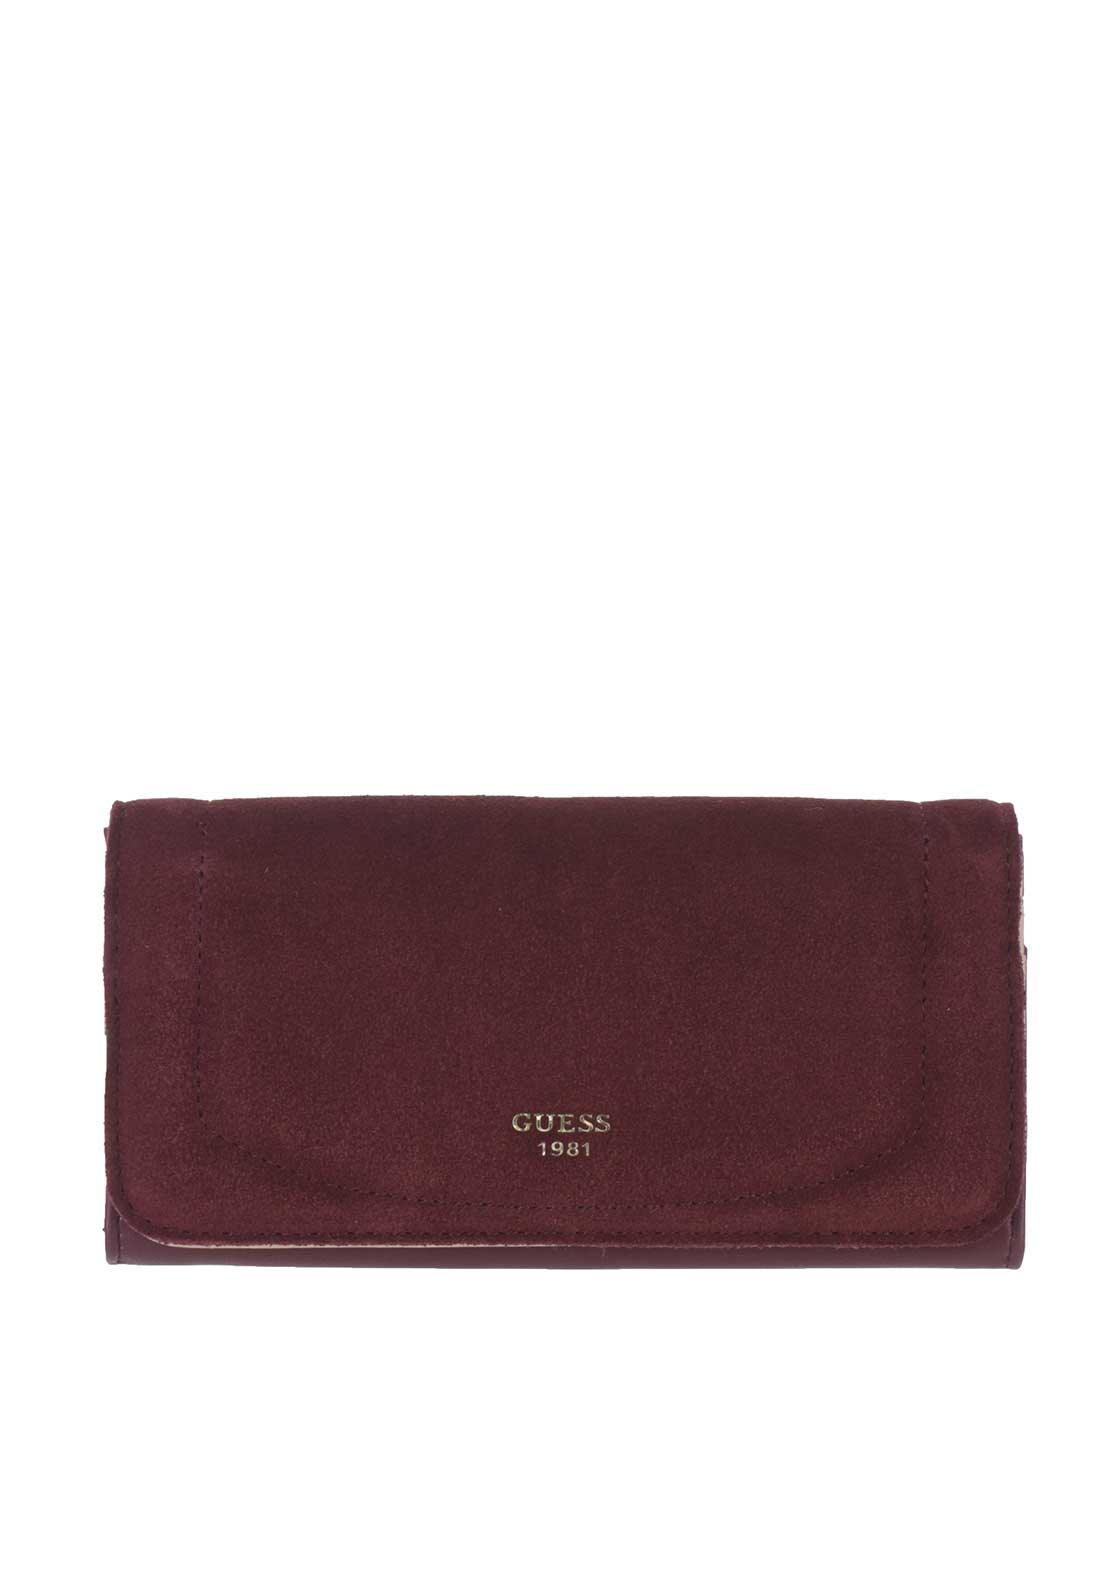 Guess Kingsley SLG Suede Insert Rollover Case Purse, Bordeaux